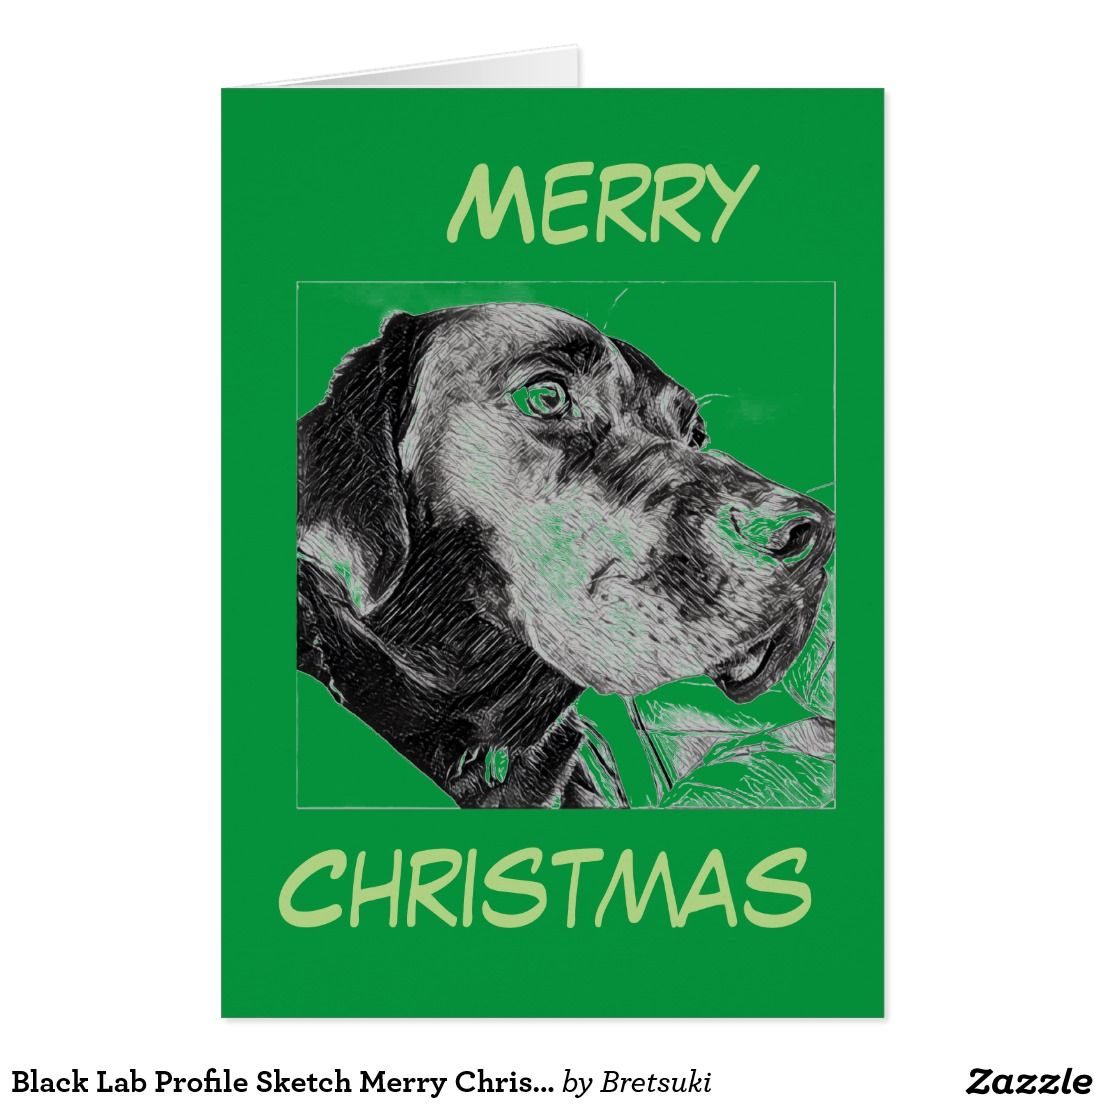 Black Lab Profile Sketch Merry Christmas Greetings Holiday Card ...